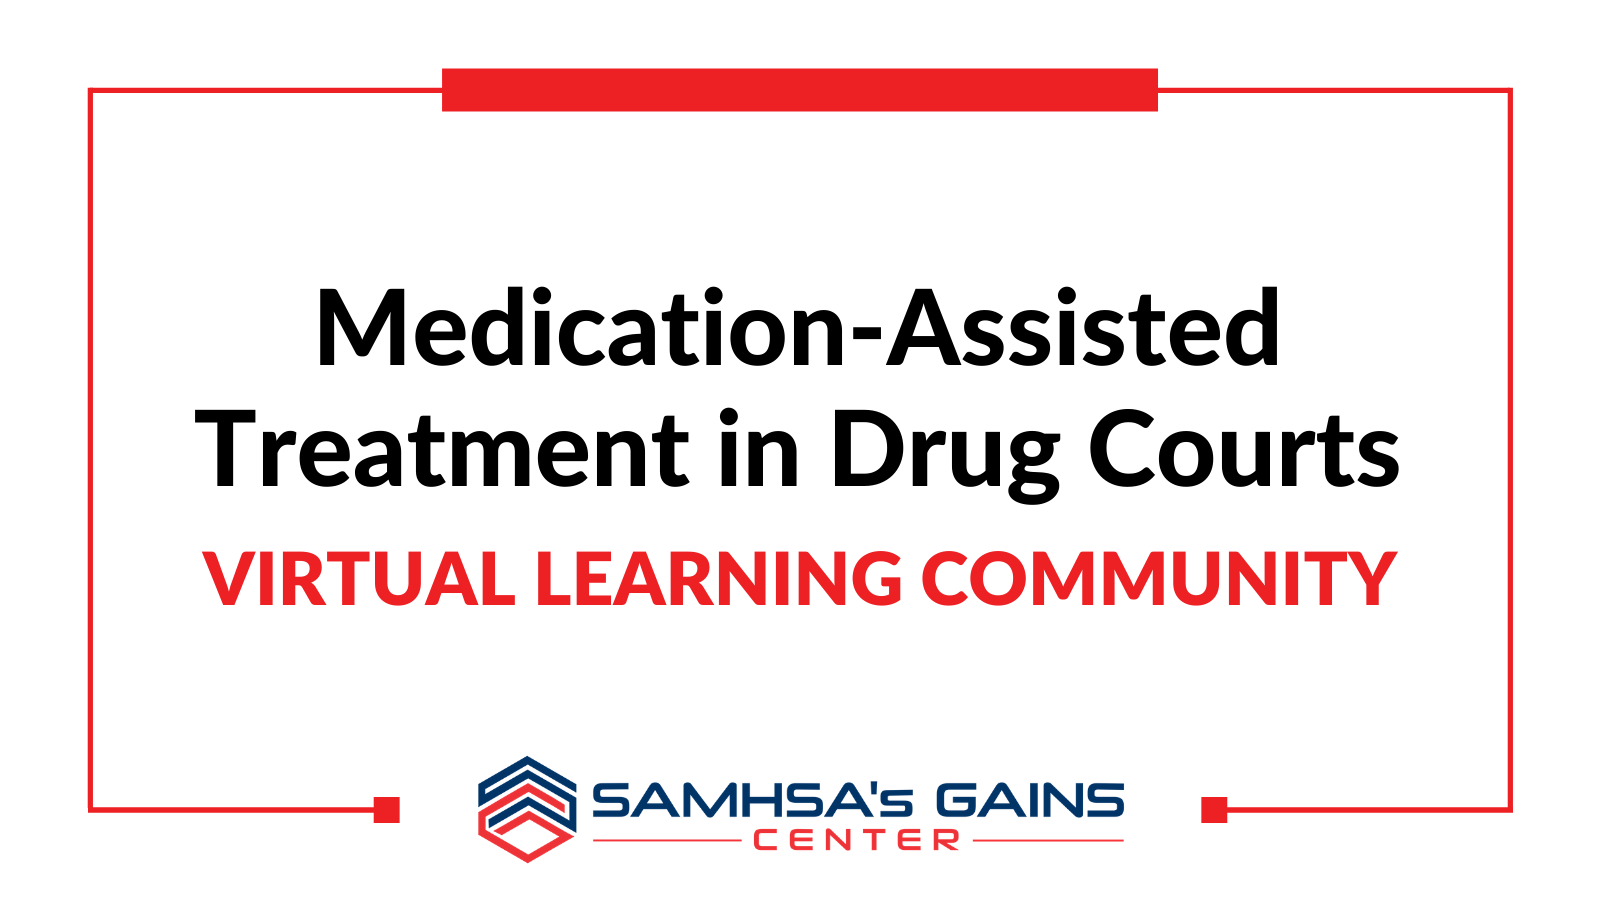 Medication-Assisted Treatment in Drug Courts Virtual Learning Community